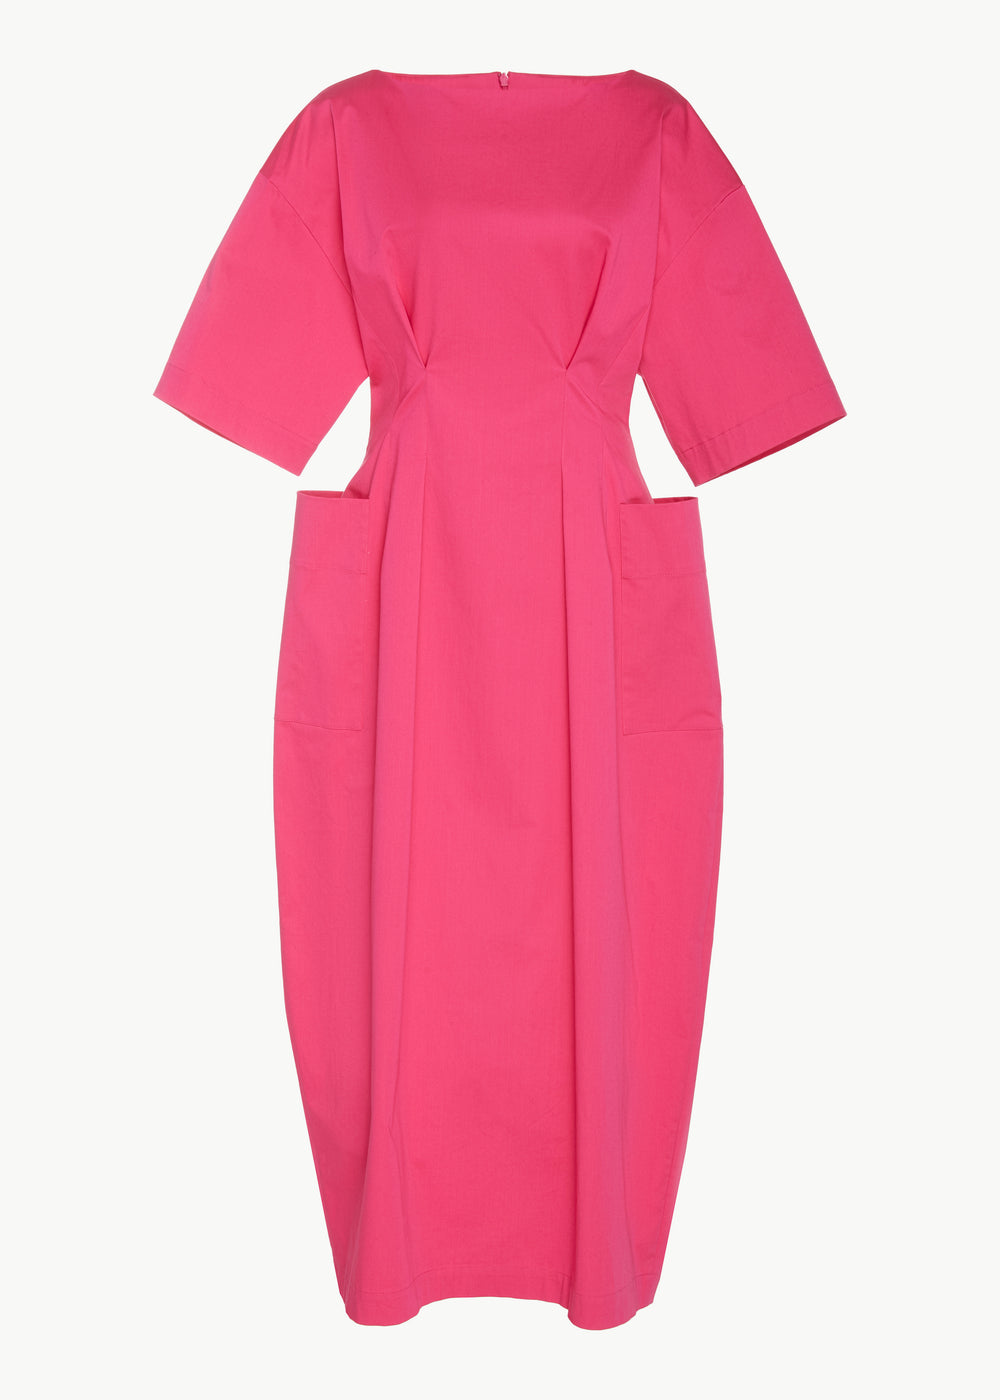 Short Sleeve Tucked Waist Dress in Stretch Sateen Cotton - Pink - CO